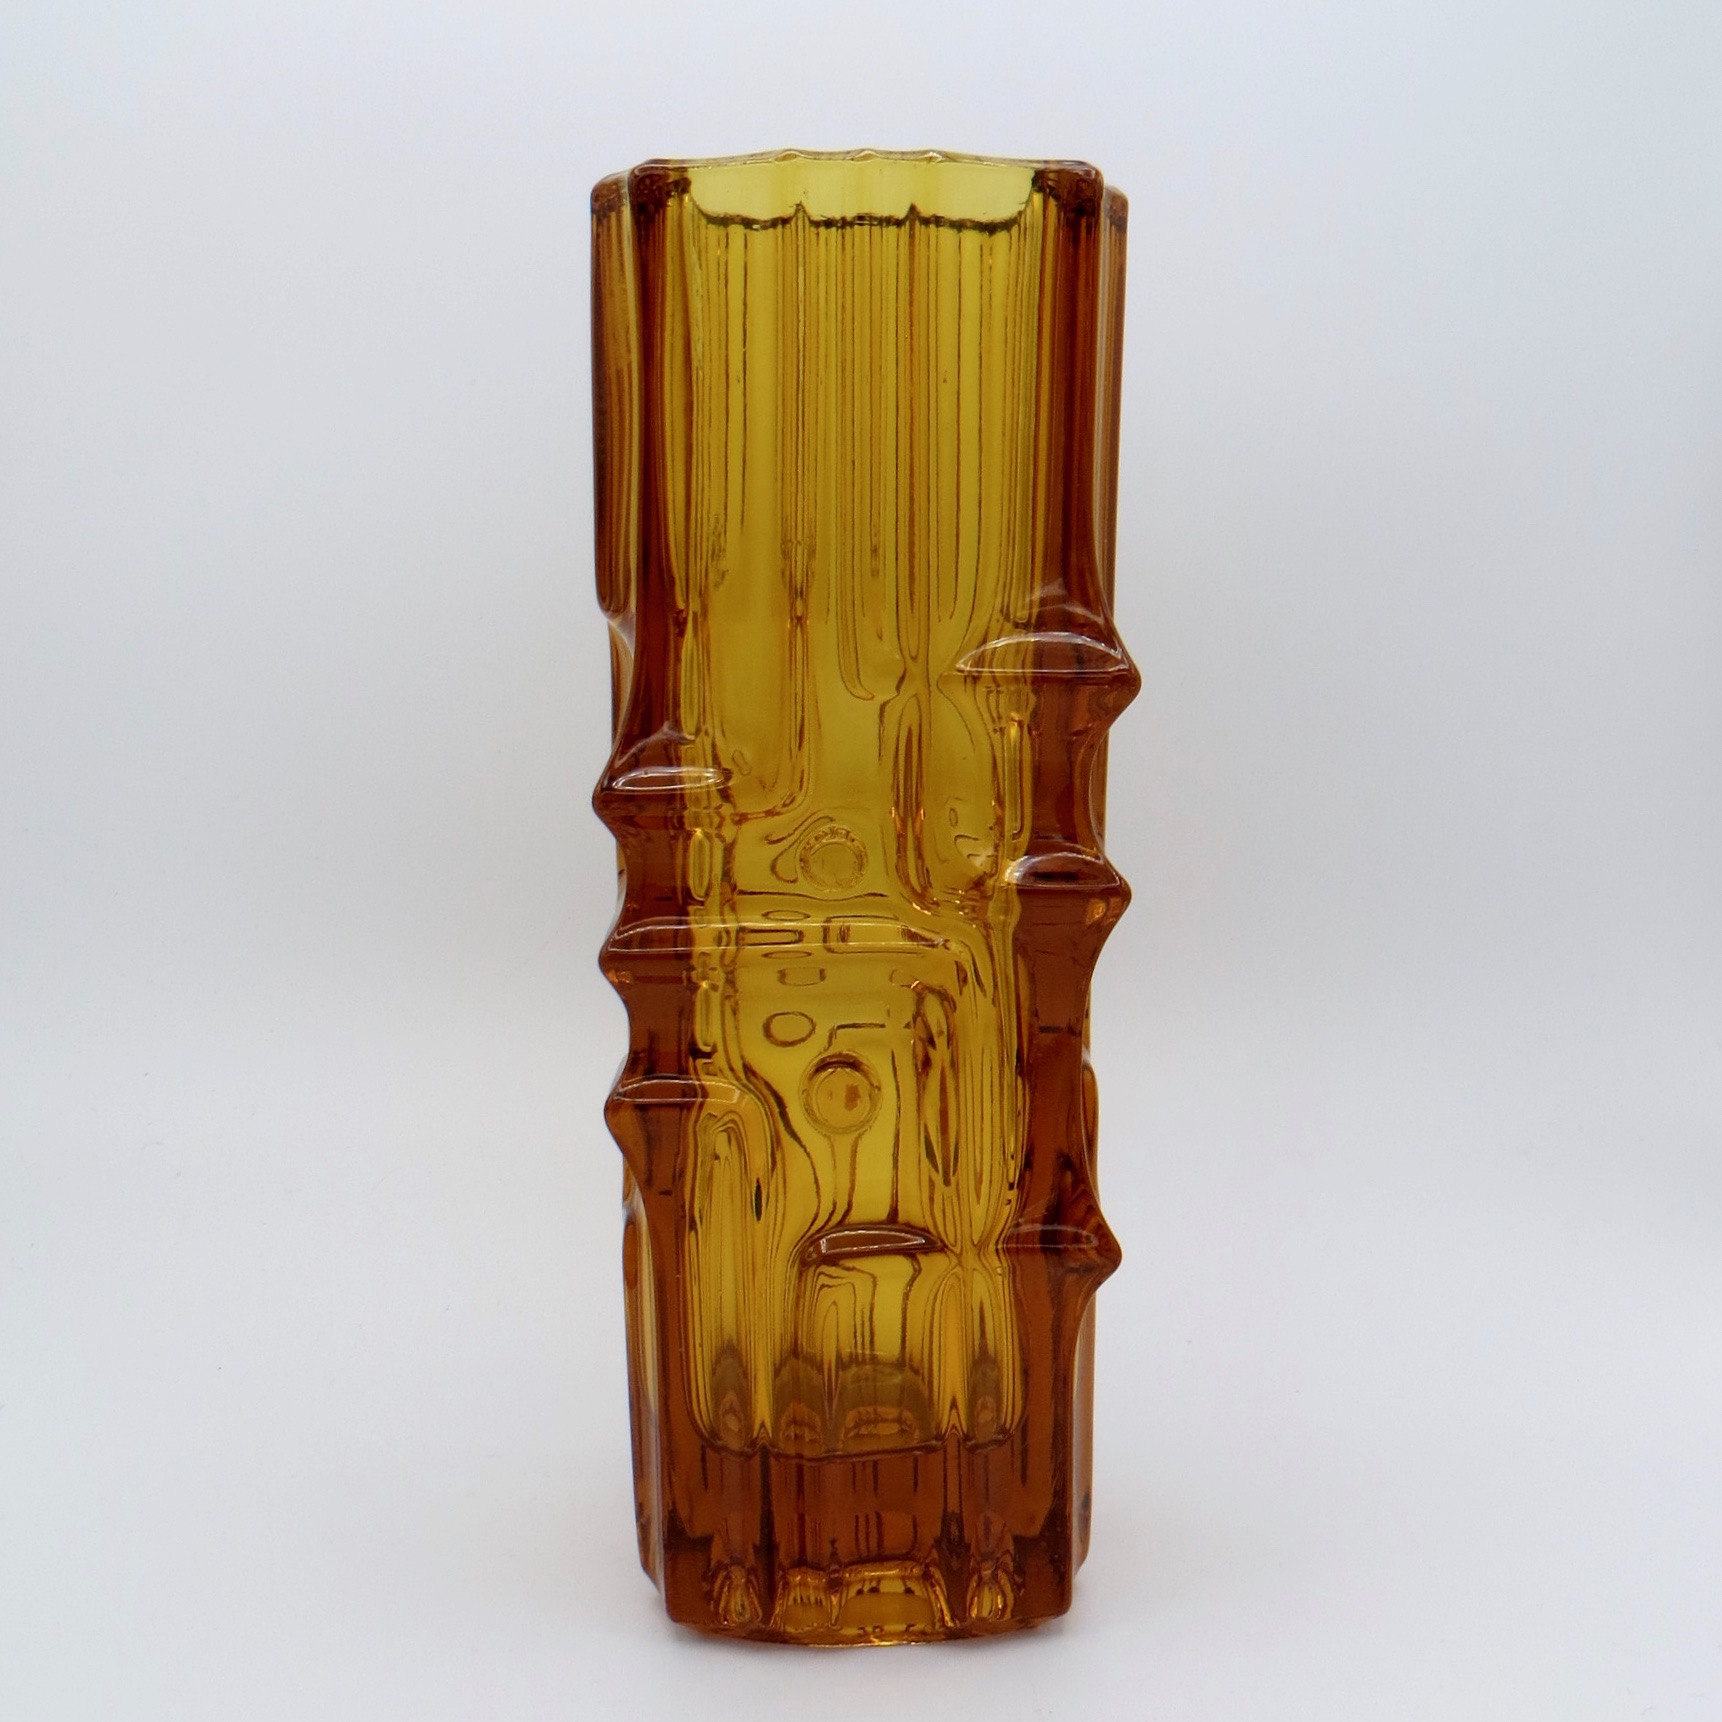 1970s Orange Glass Vase